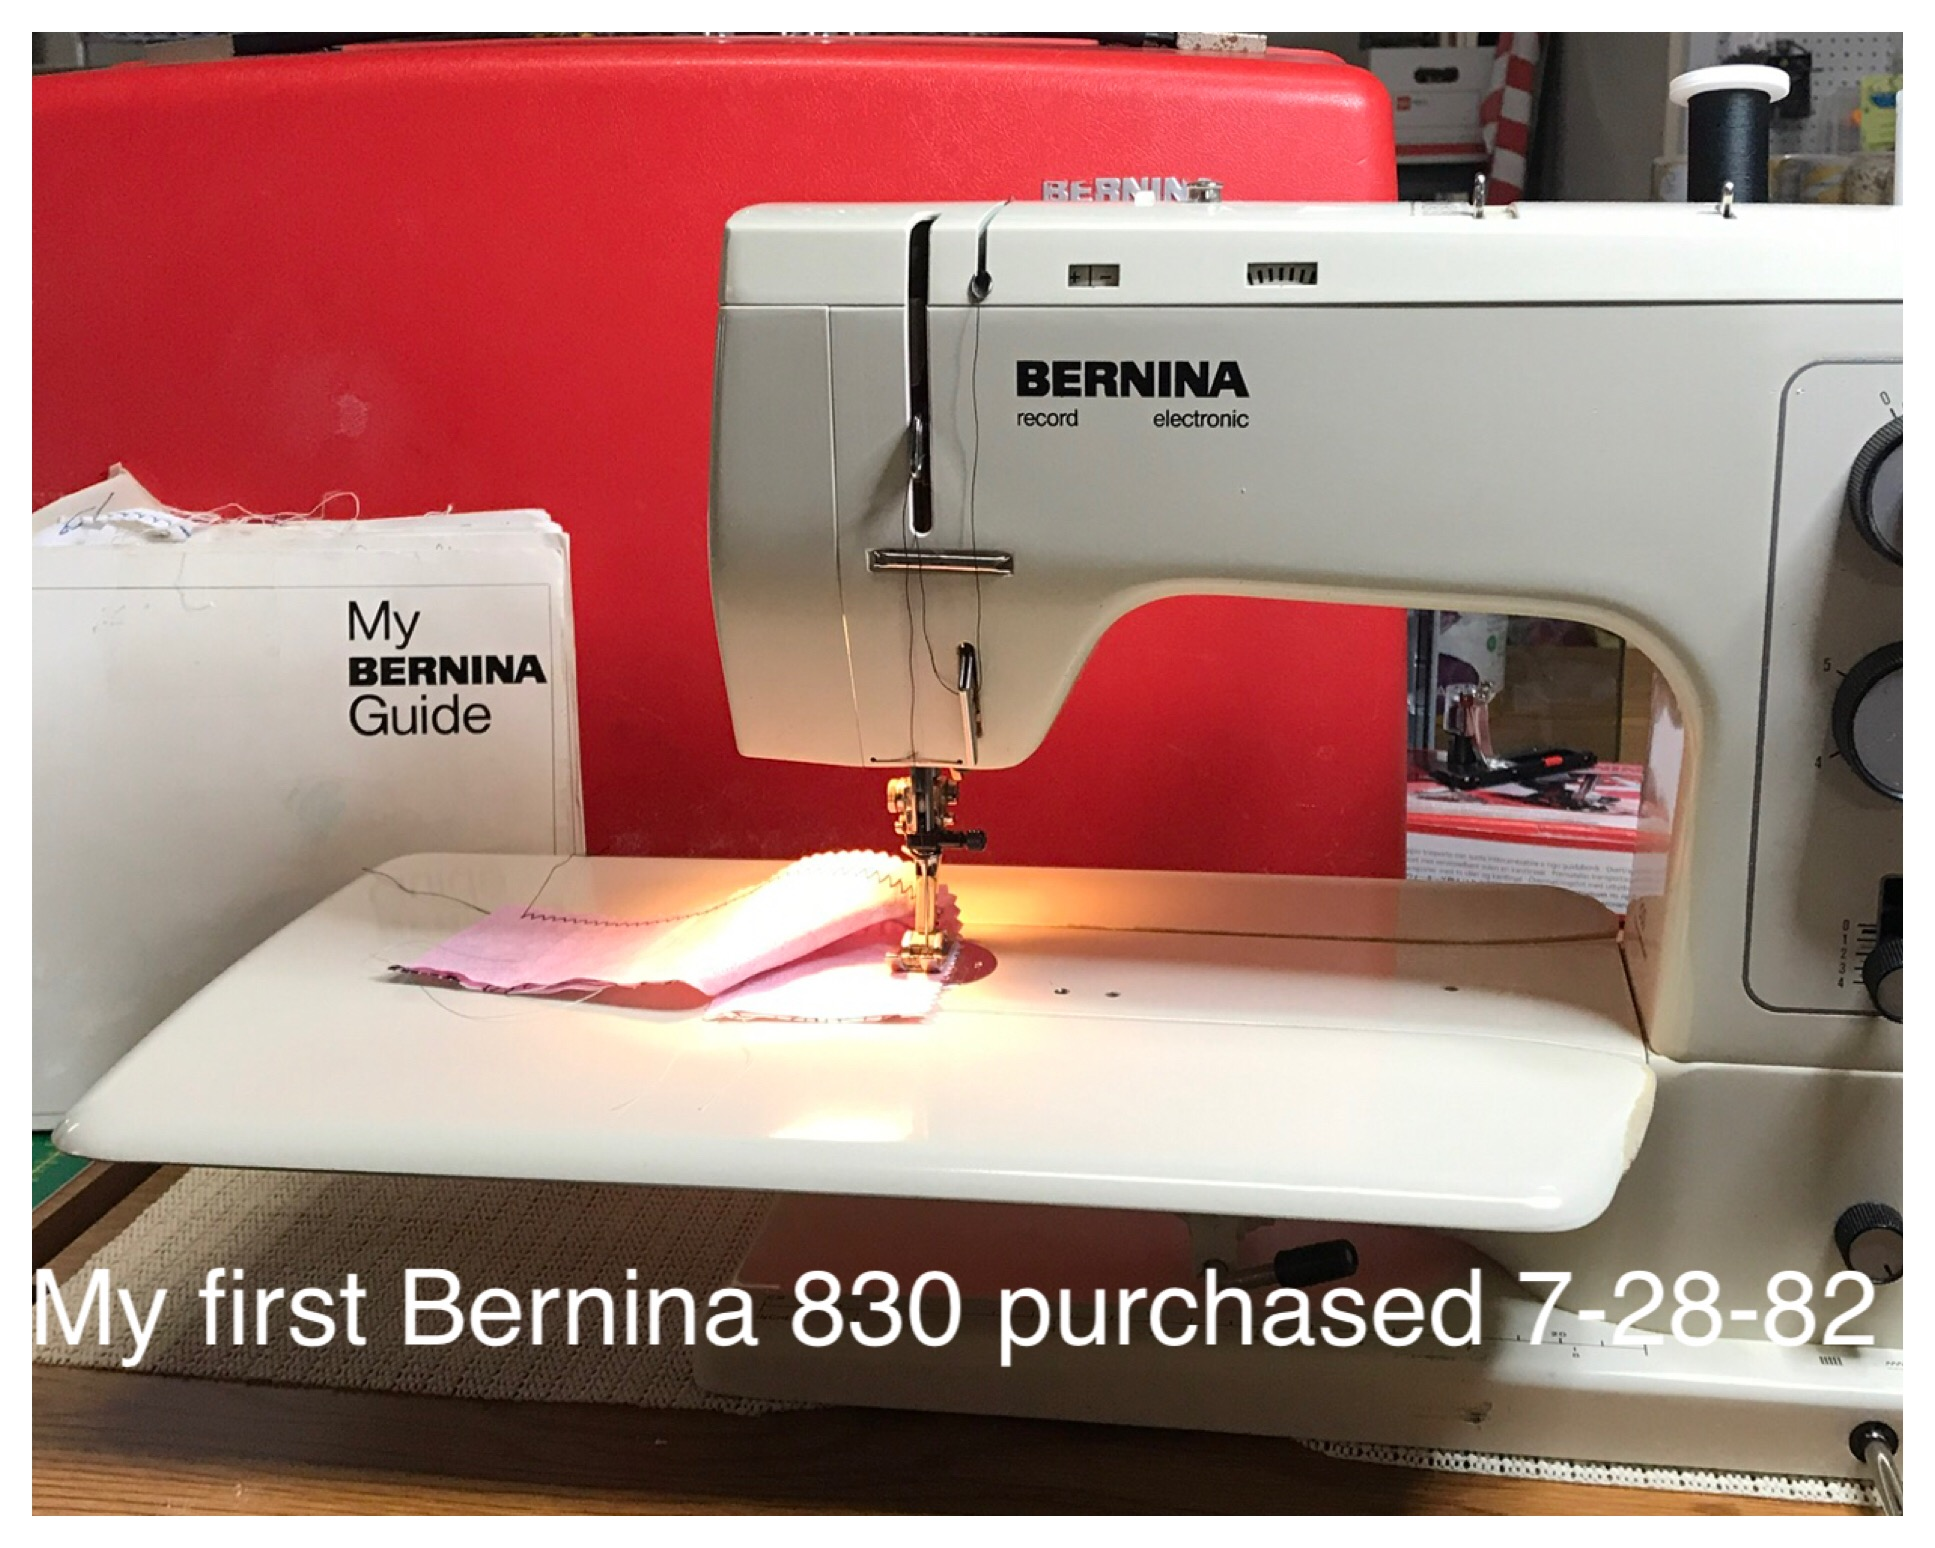 My First Bernina 830 With The Red Case Is Now 36 Years Old Weallsew Sewing Machine Threading Diagram Img 0628 0629 1619 0624